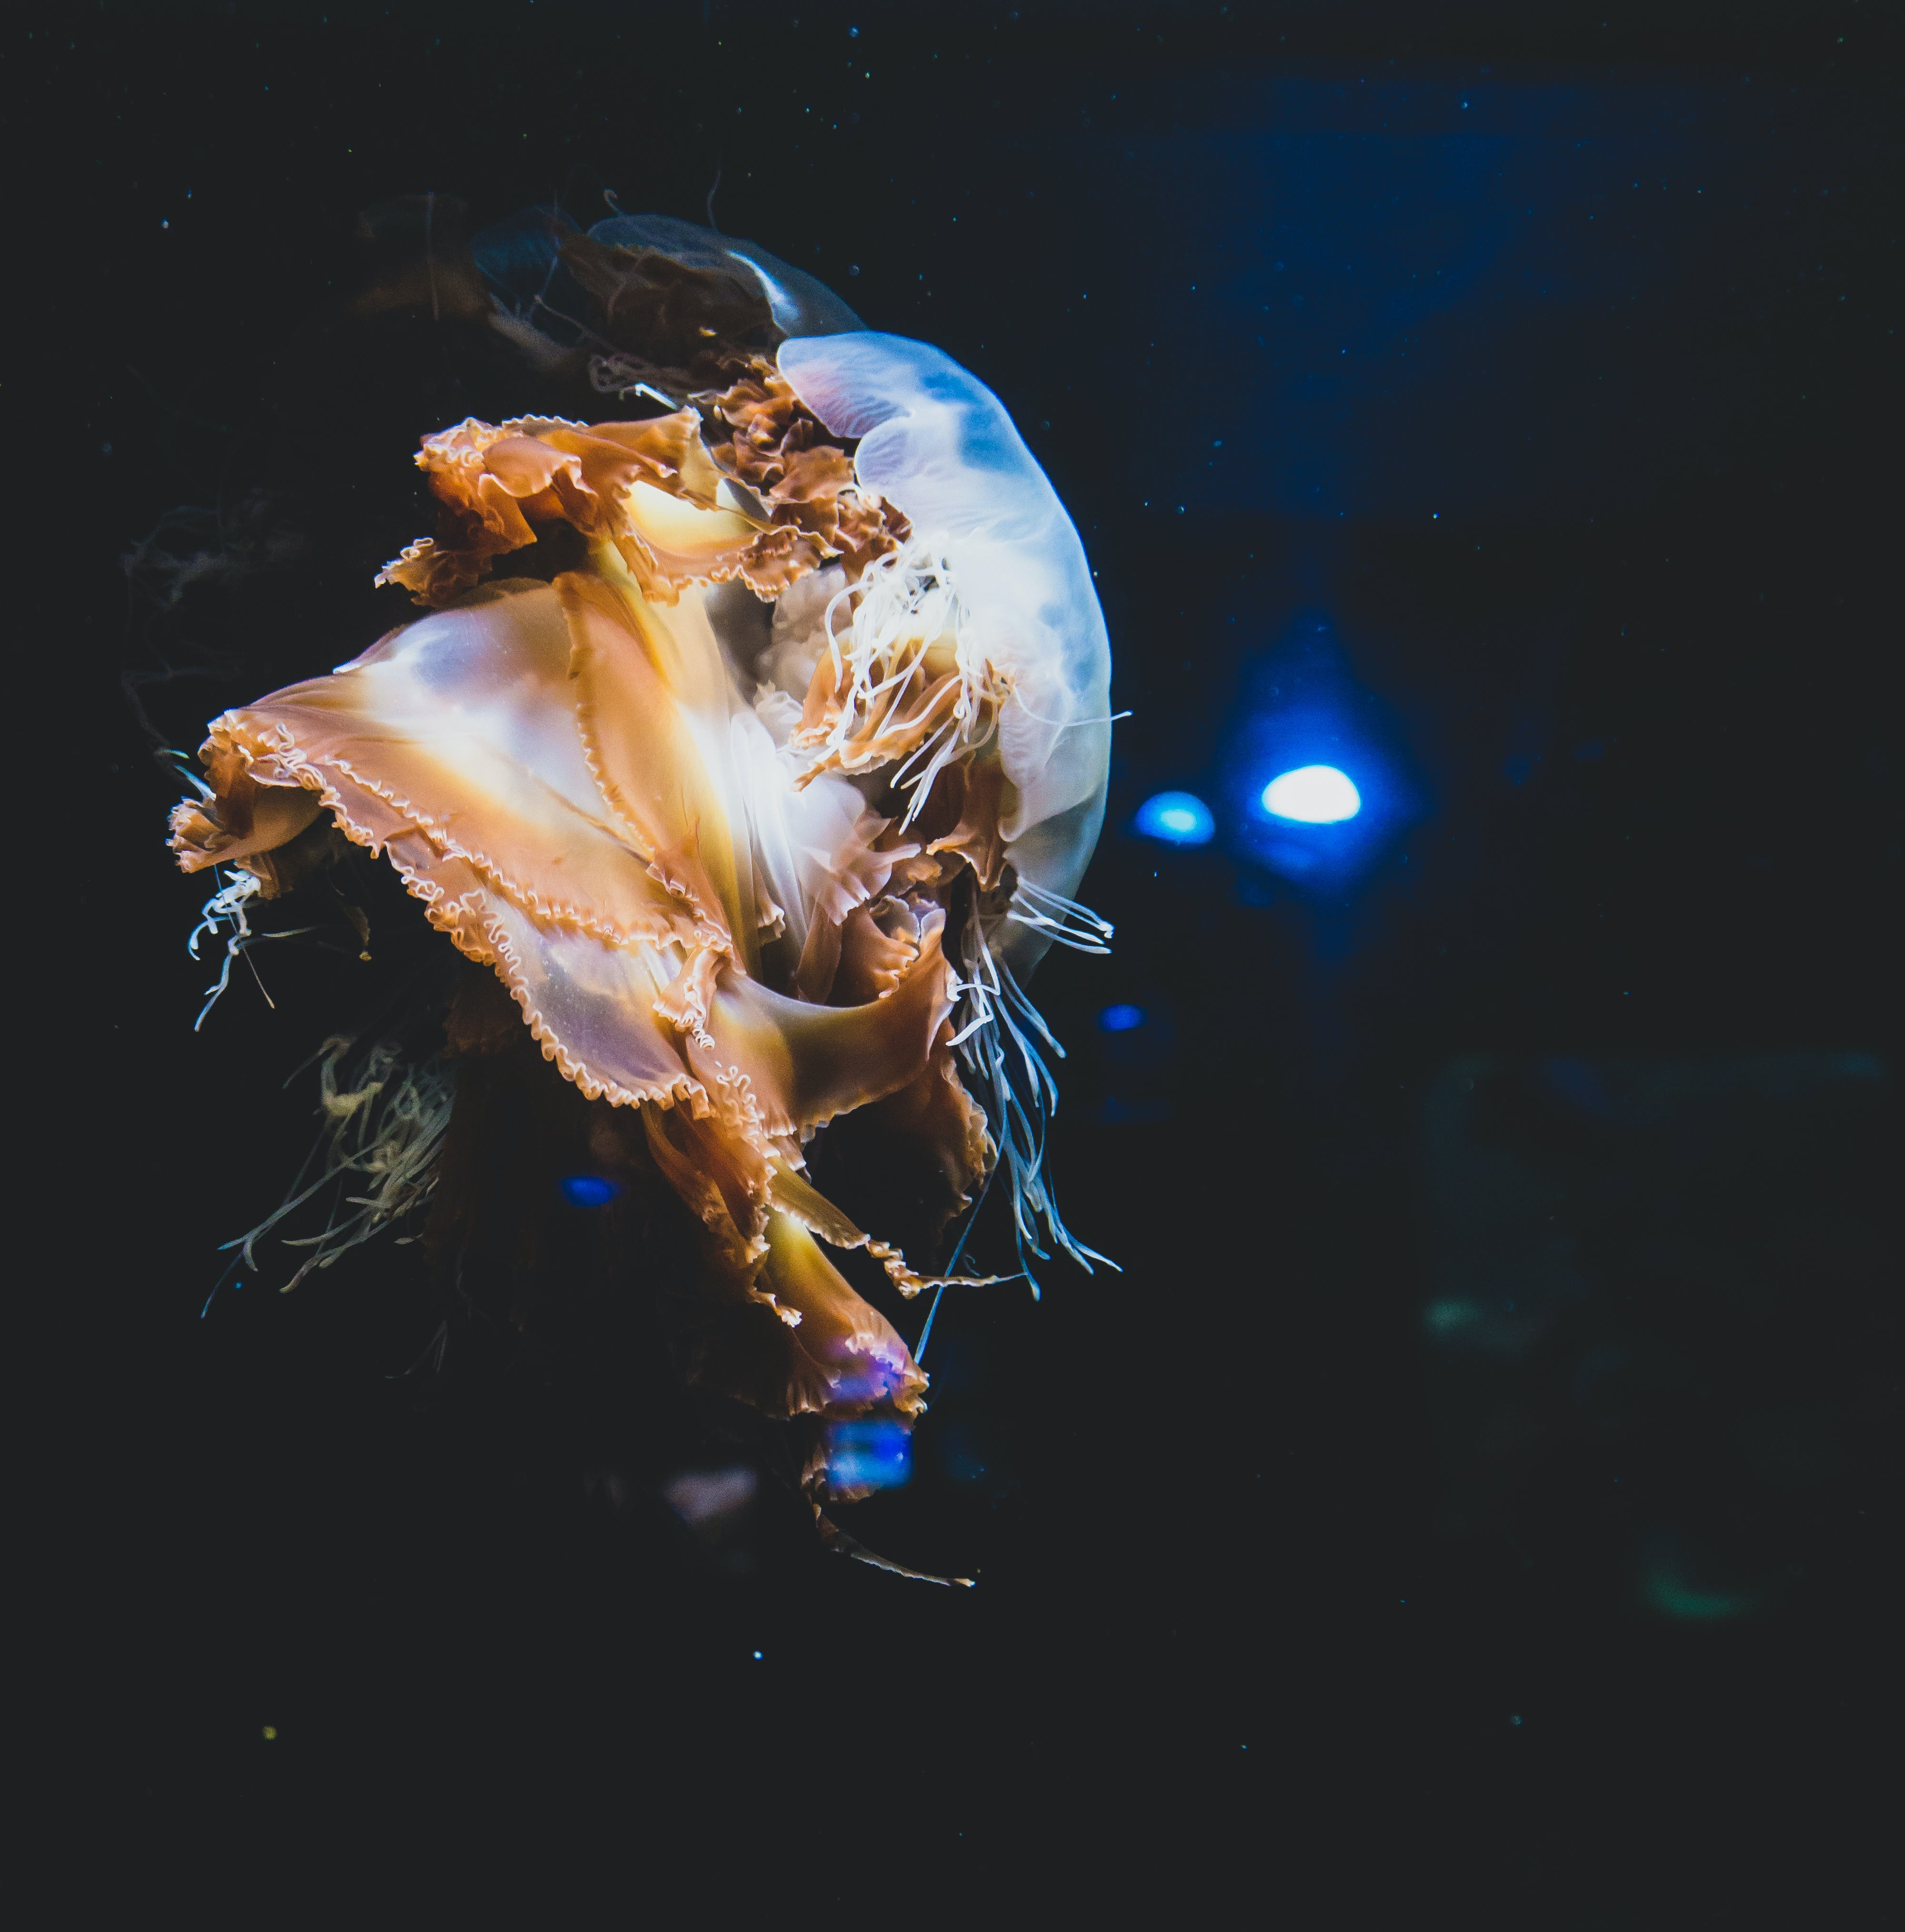 Selective Focus Photography of Jelly Fish